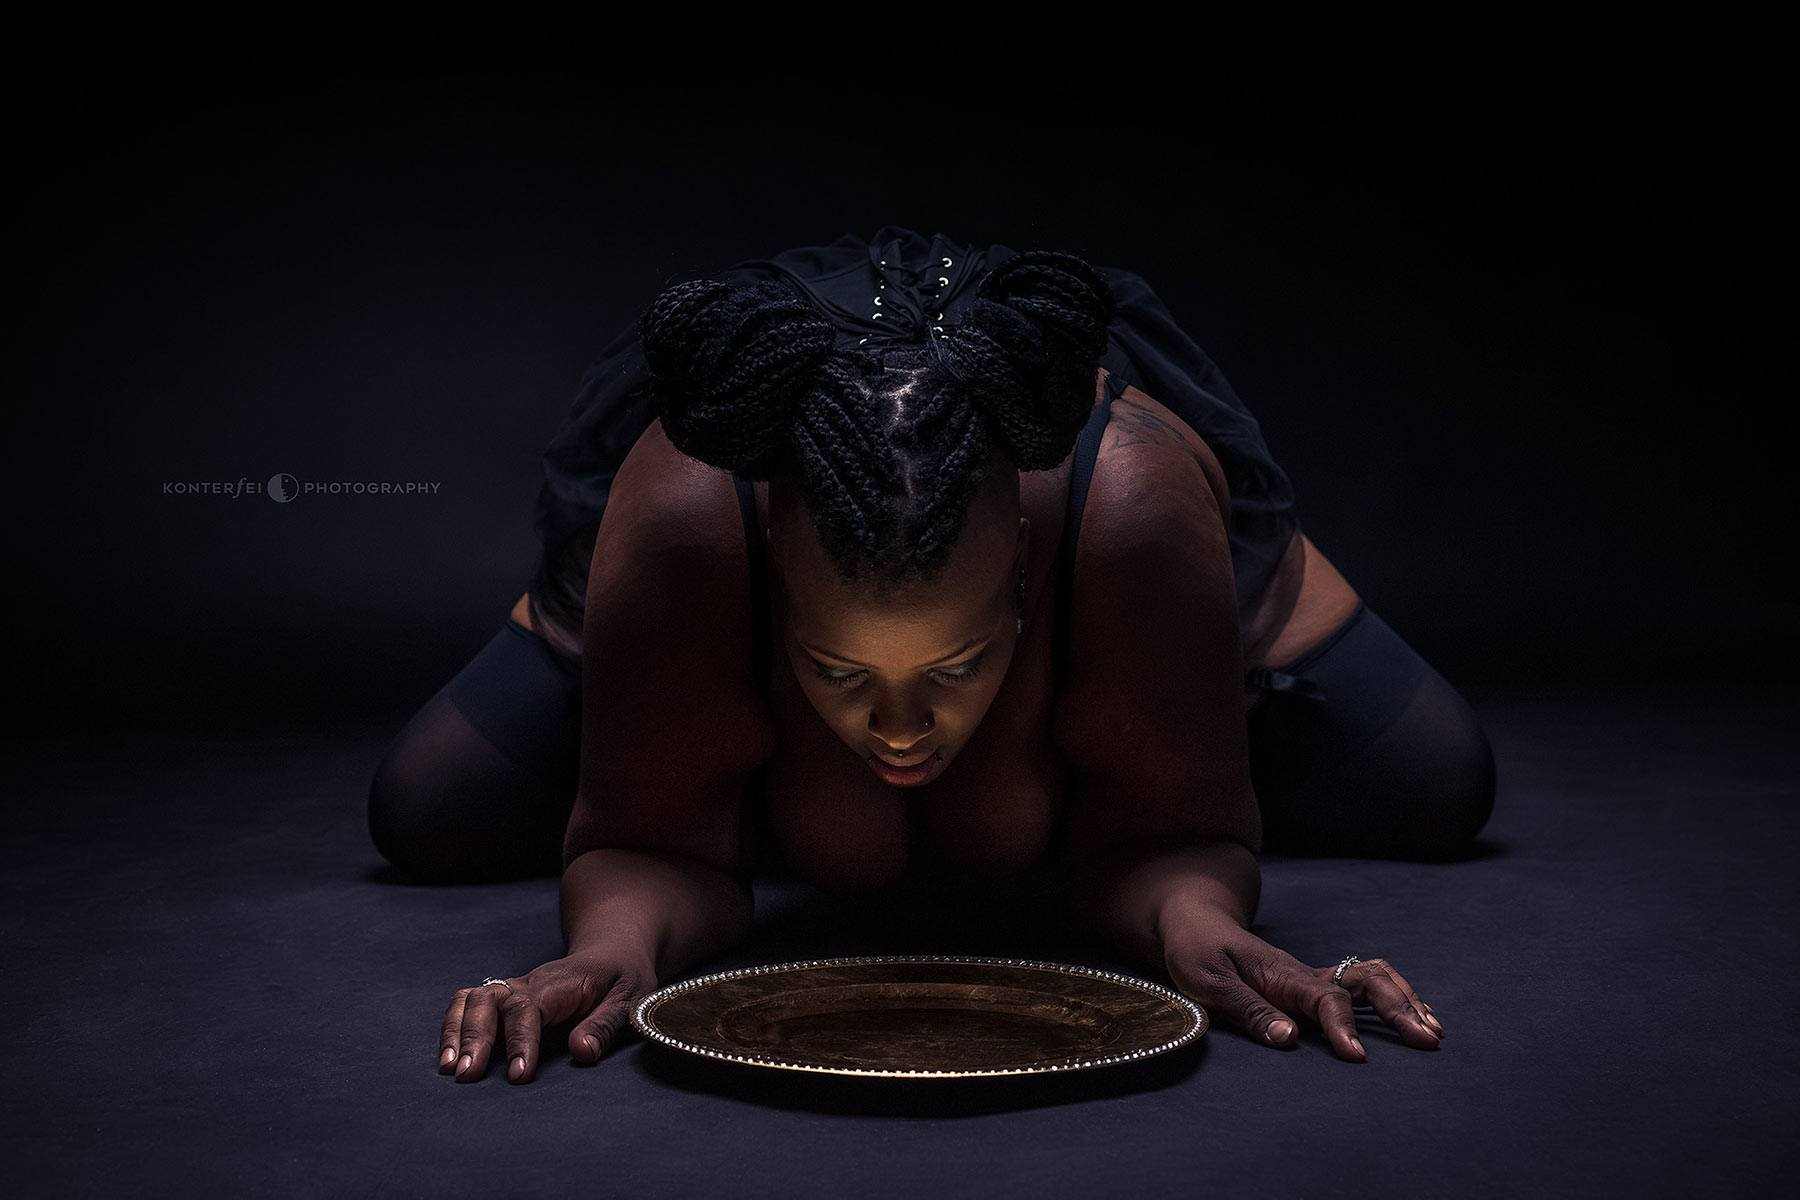 Golden Diet | Dark Beauty | Photography